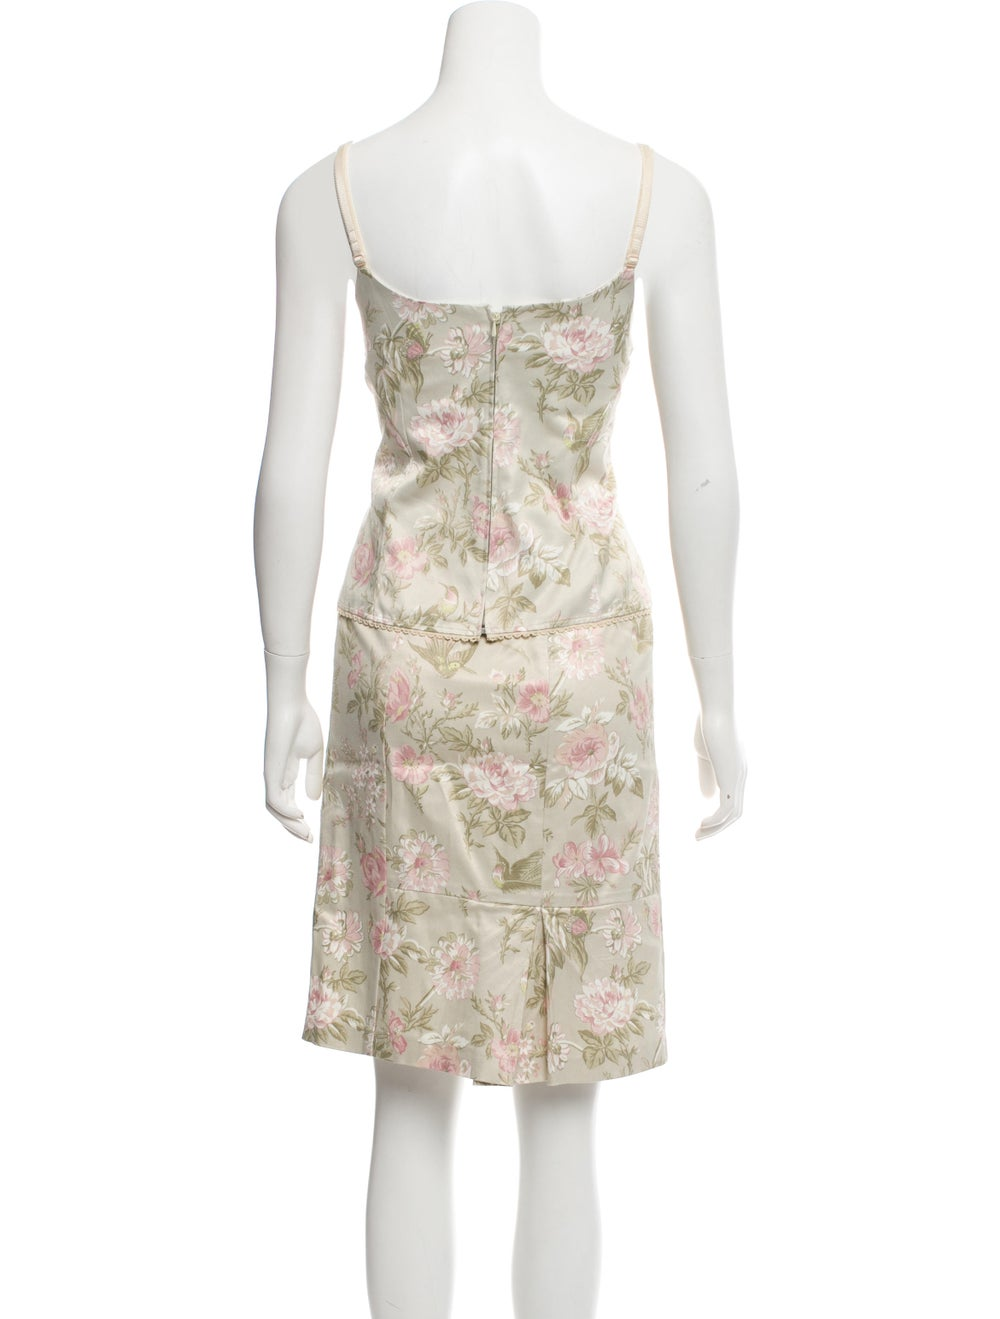 Dolce & Gabbana Floral Print Two-Piece Set green - image 3